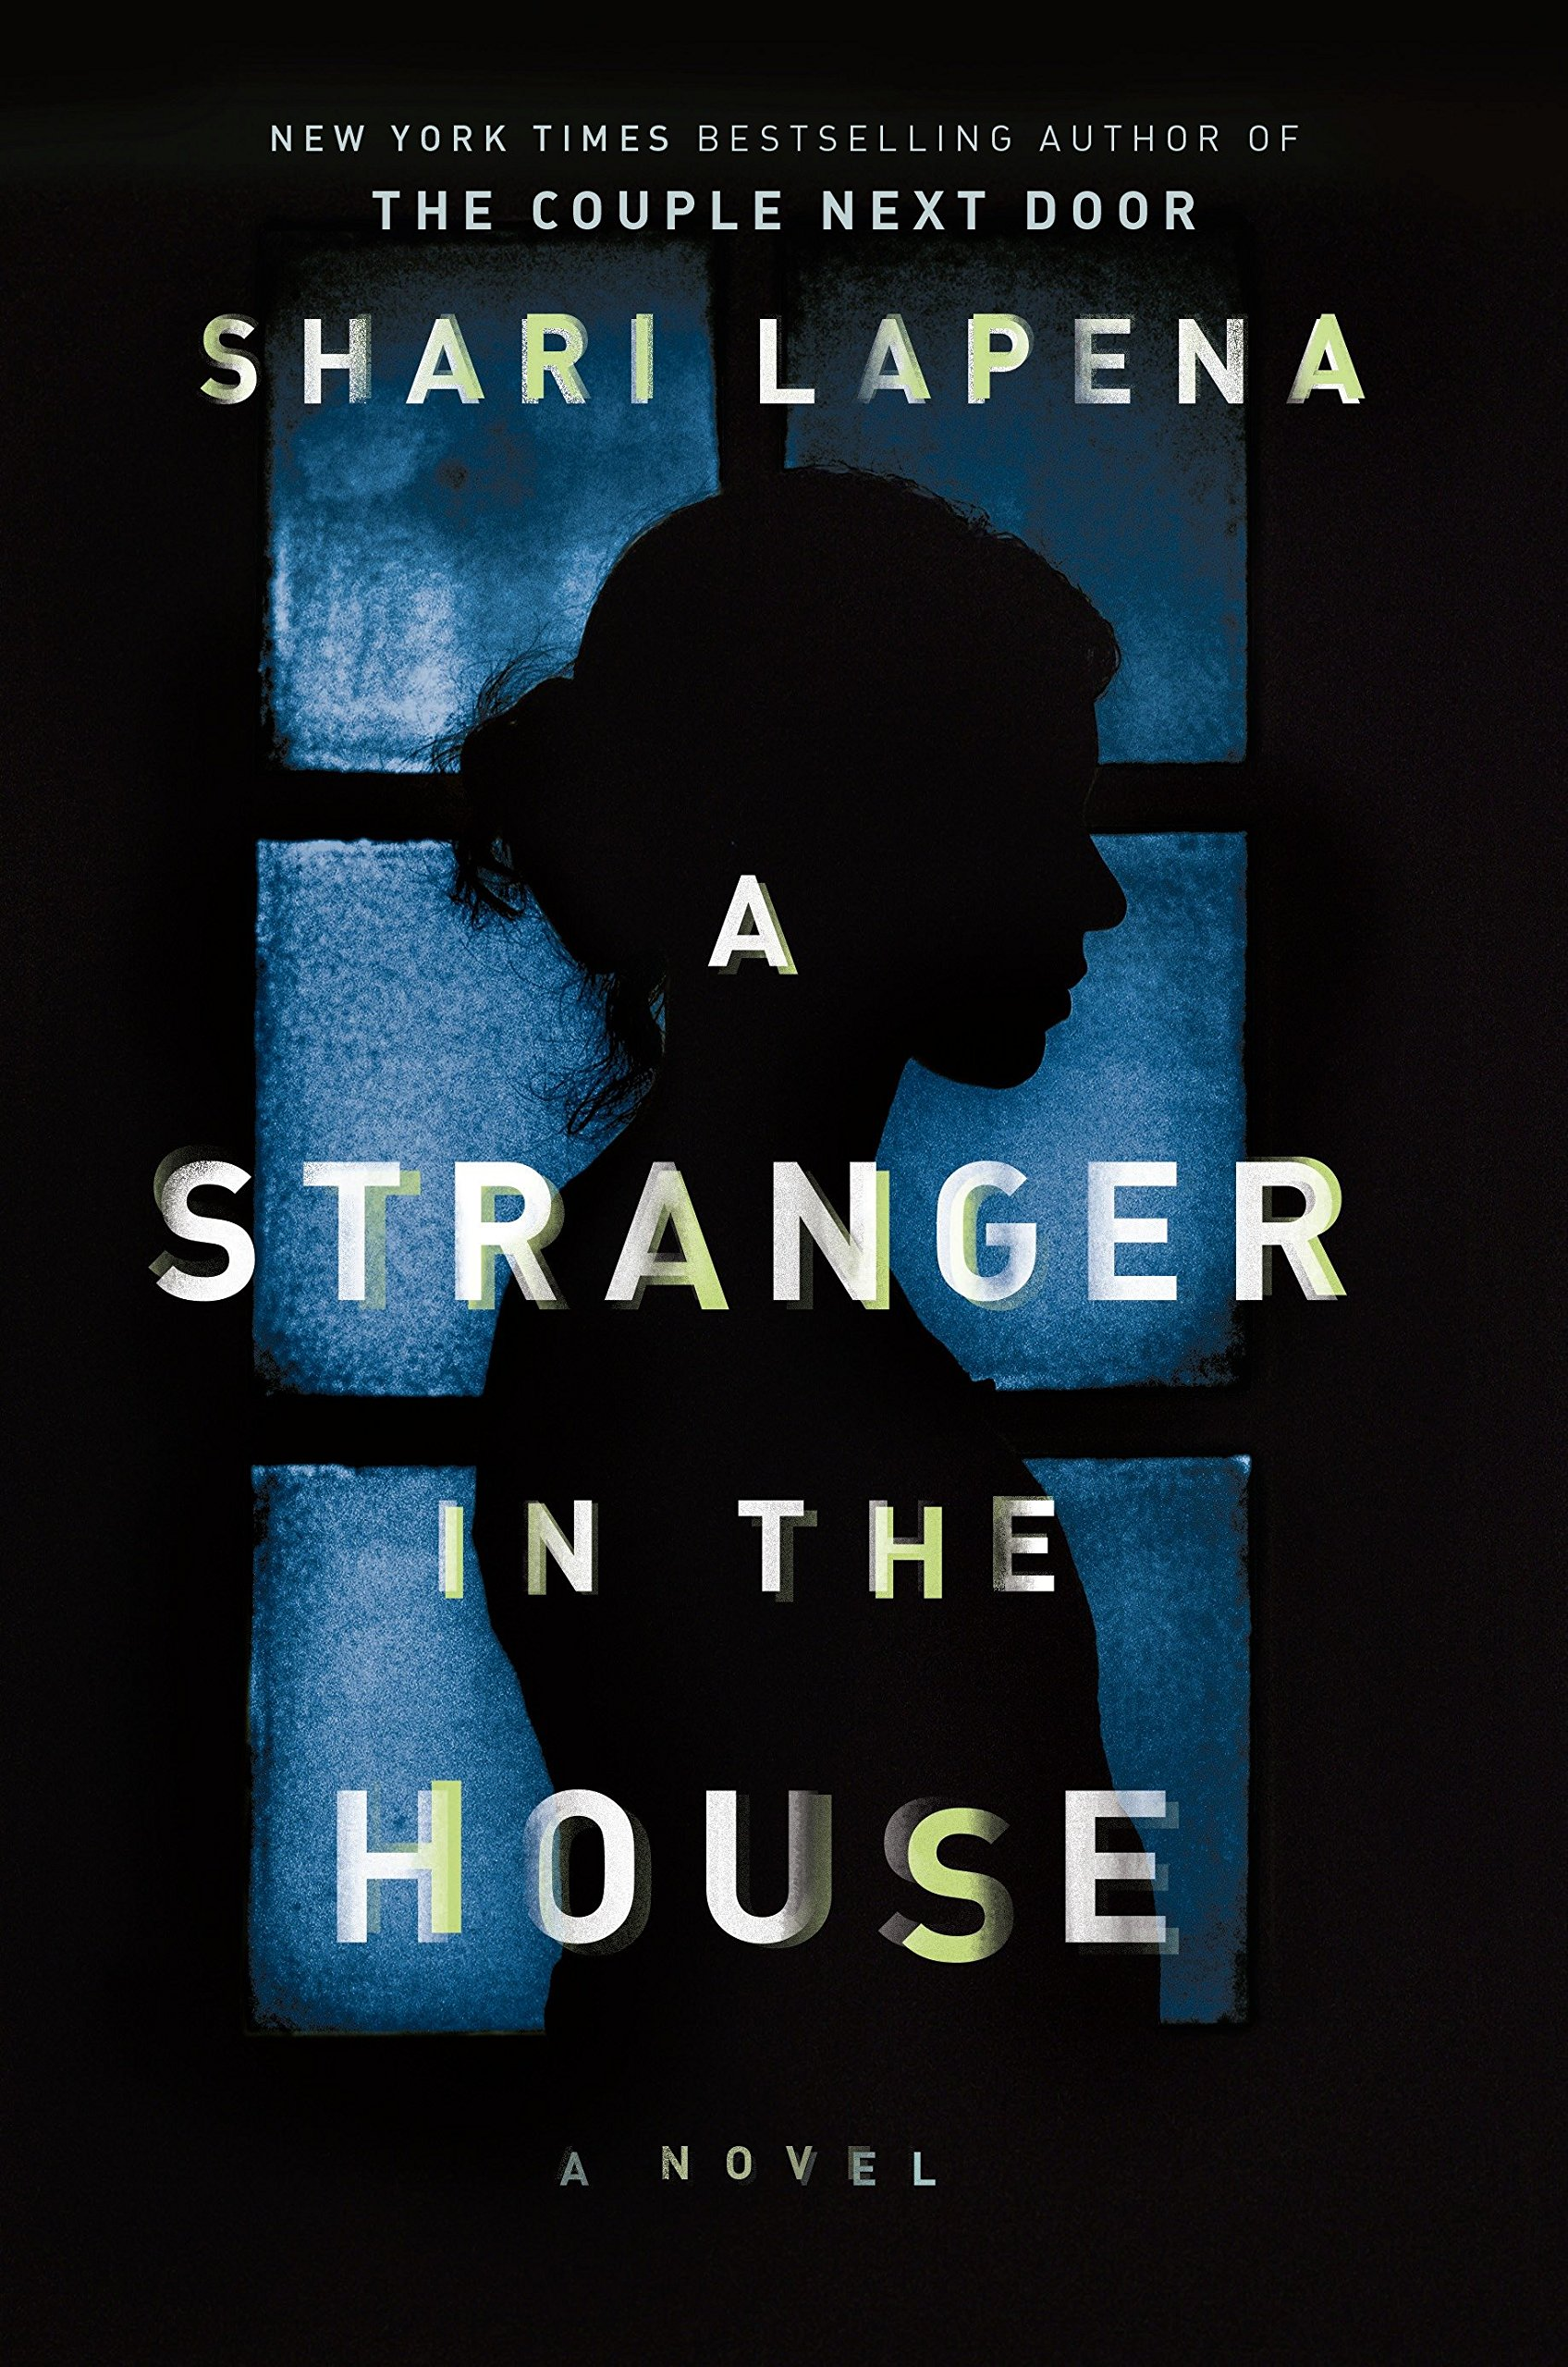 Amazon.com: A Stranger in the House: A Novel (9780735221123 ...